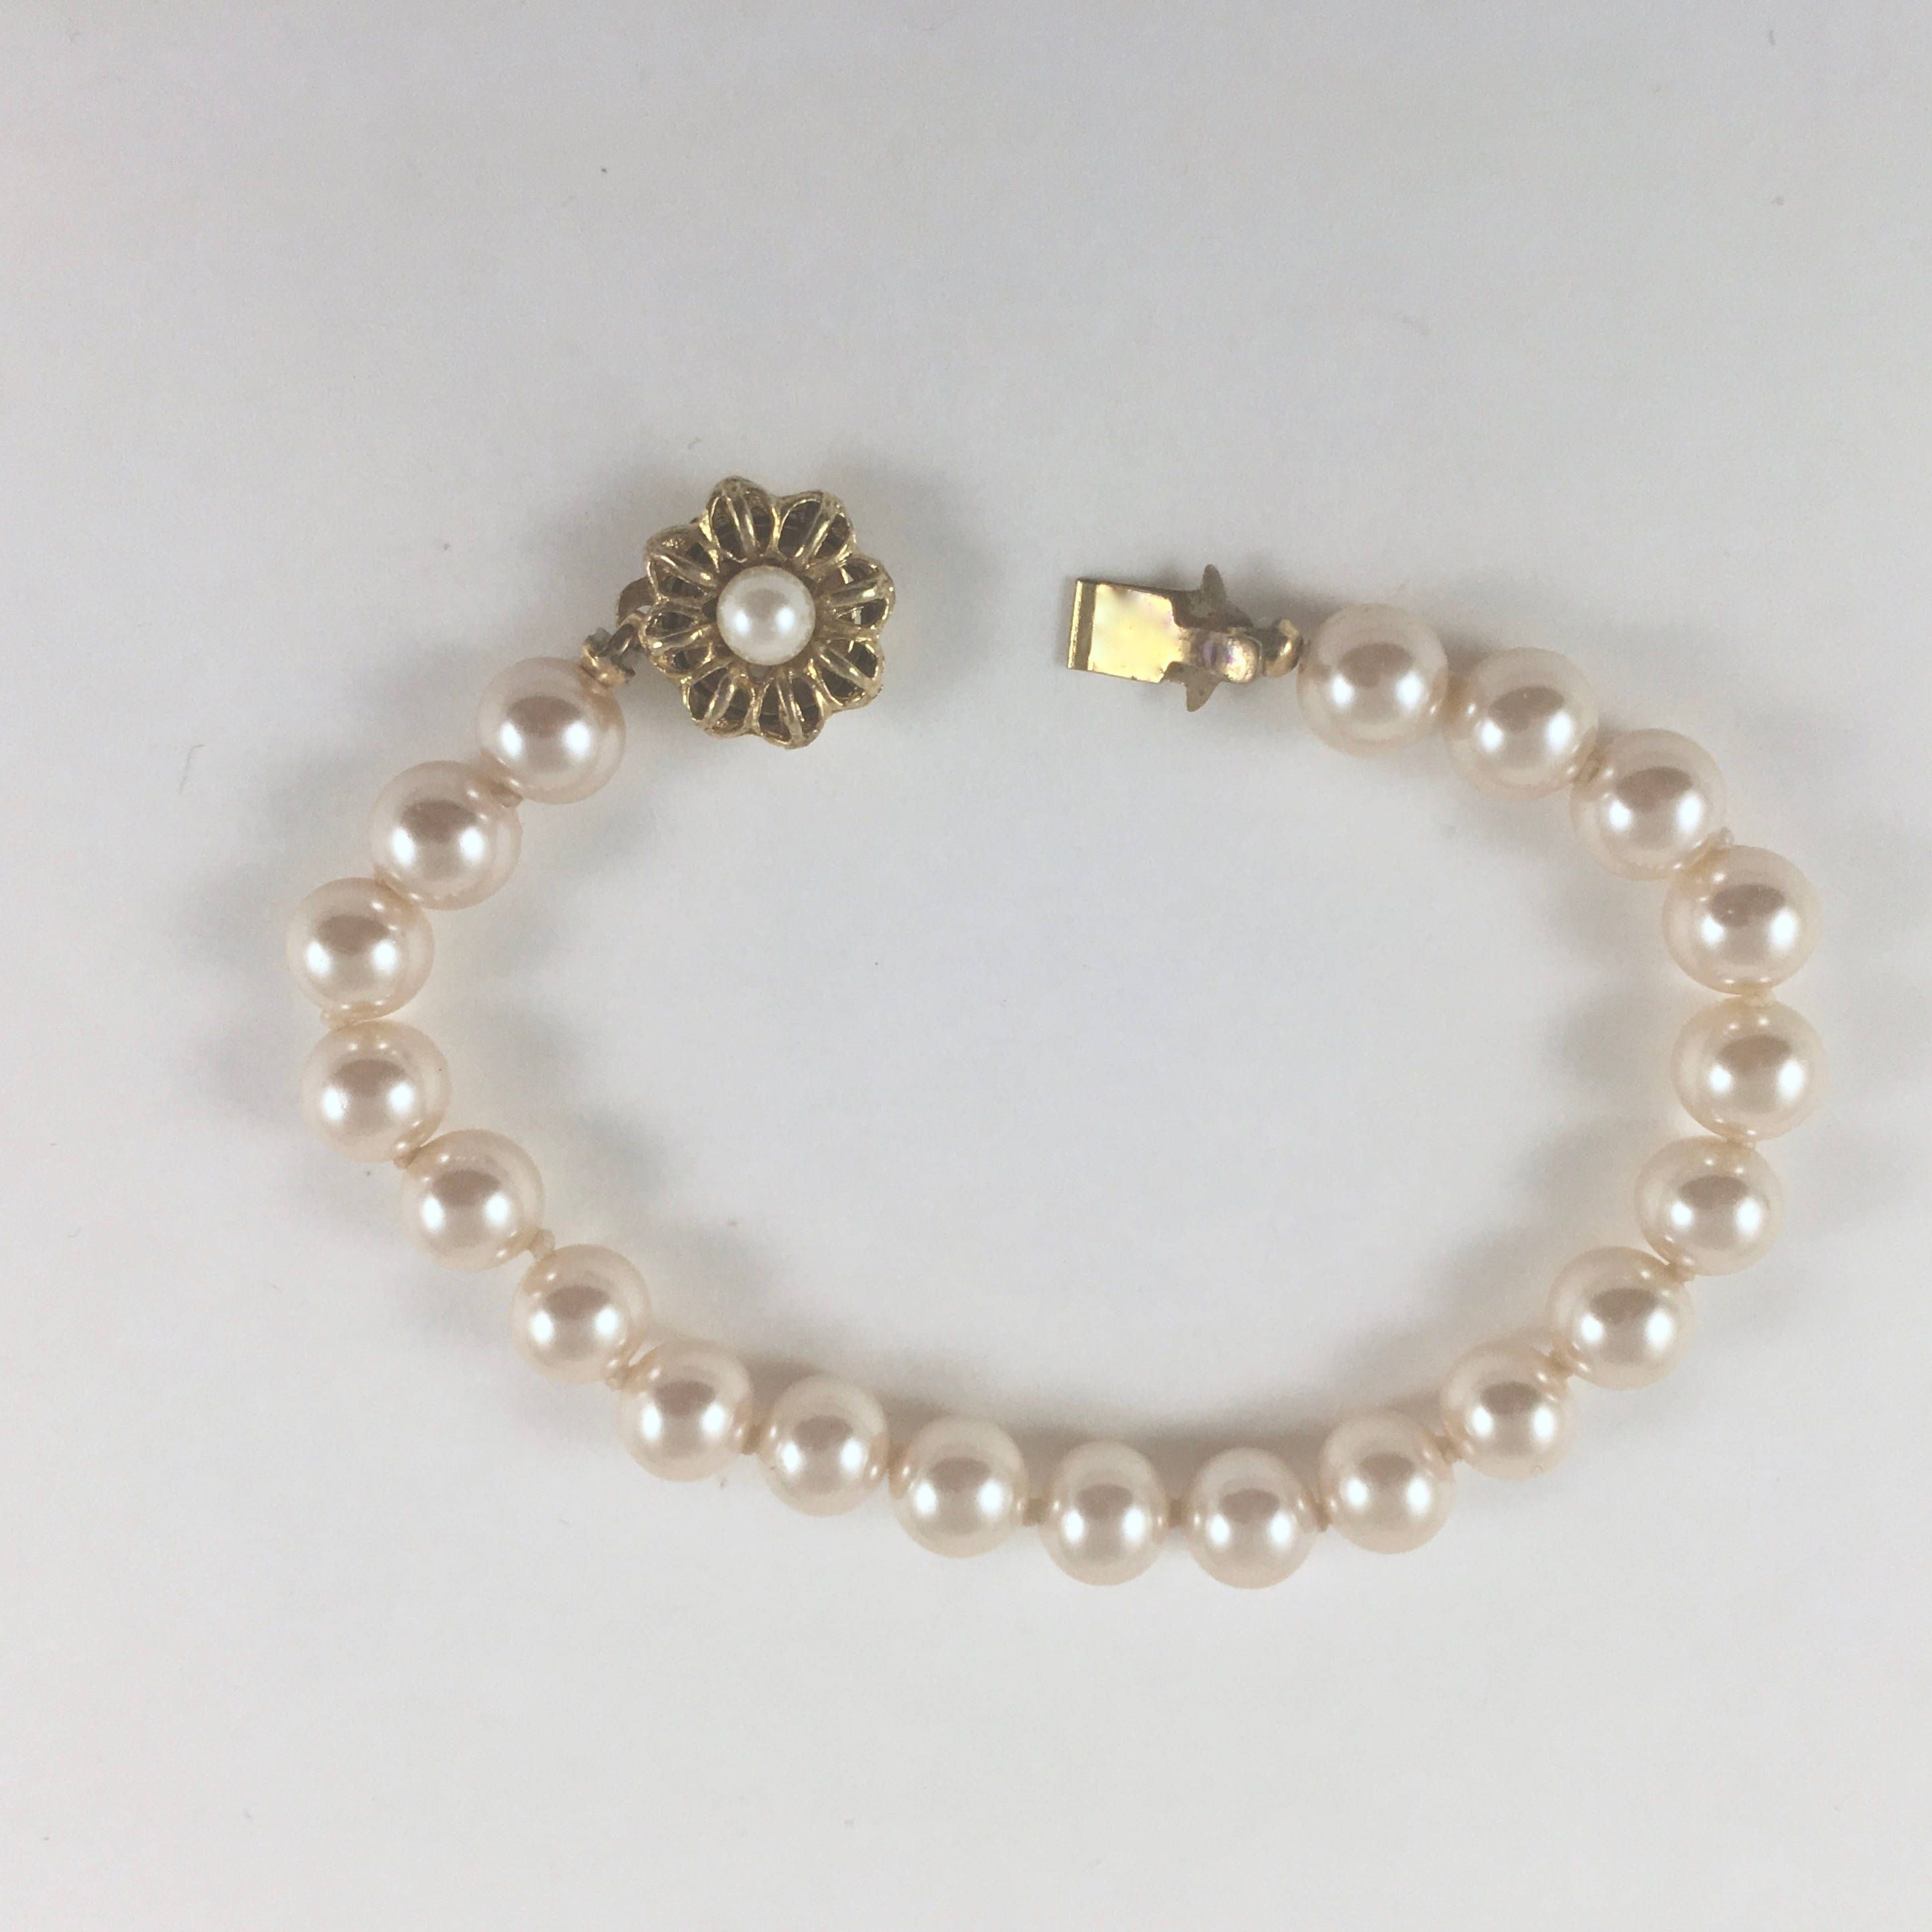 1a5adad67a3d4 Vintage Pearl Bracelet, Gold Flower and Pearl Clasp, Faux Pearl ...